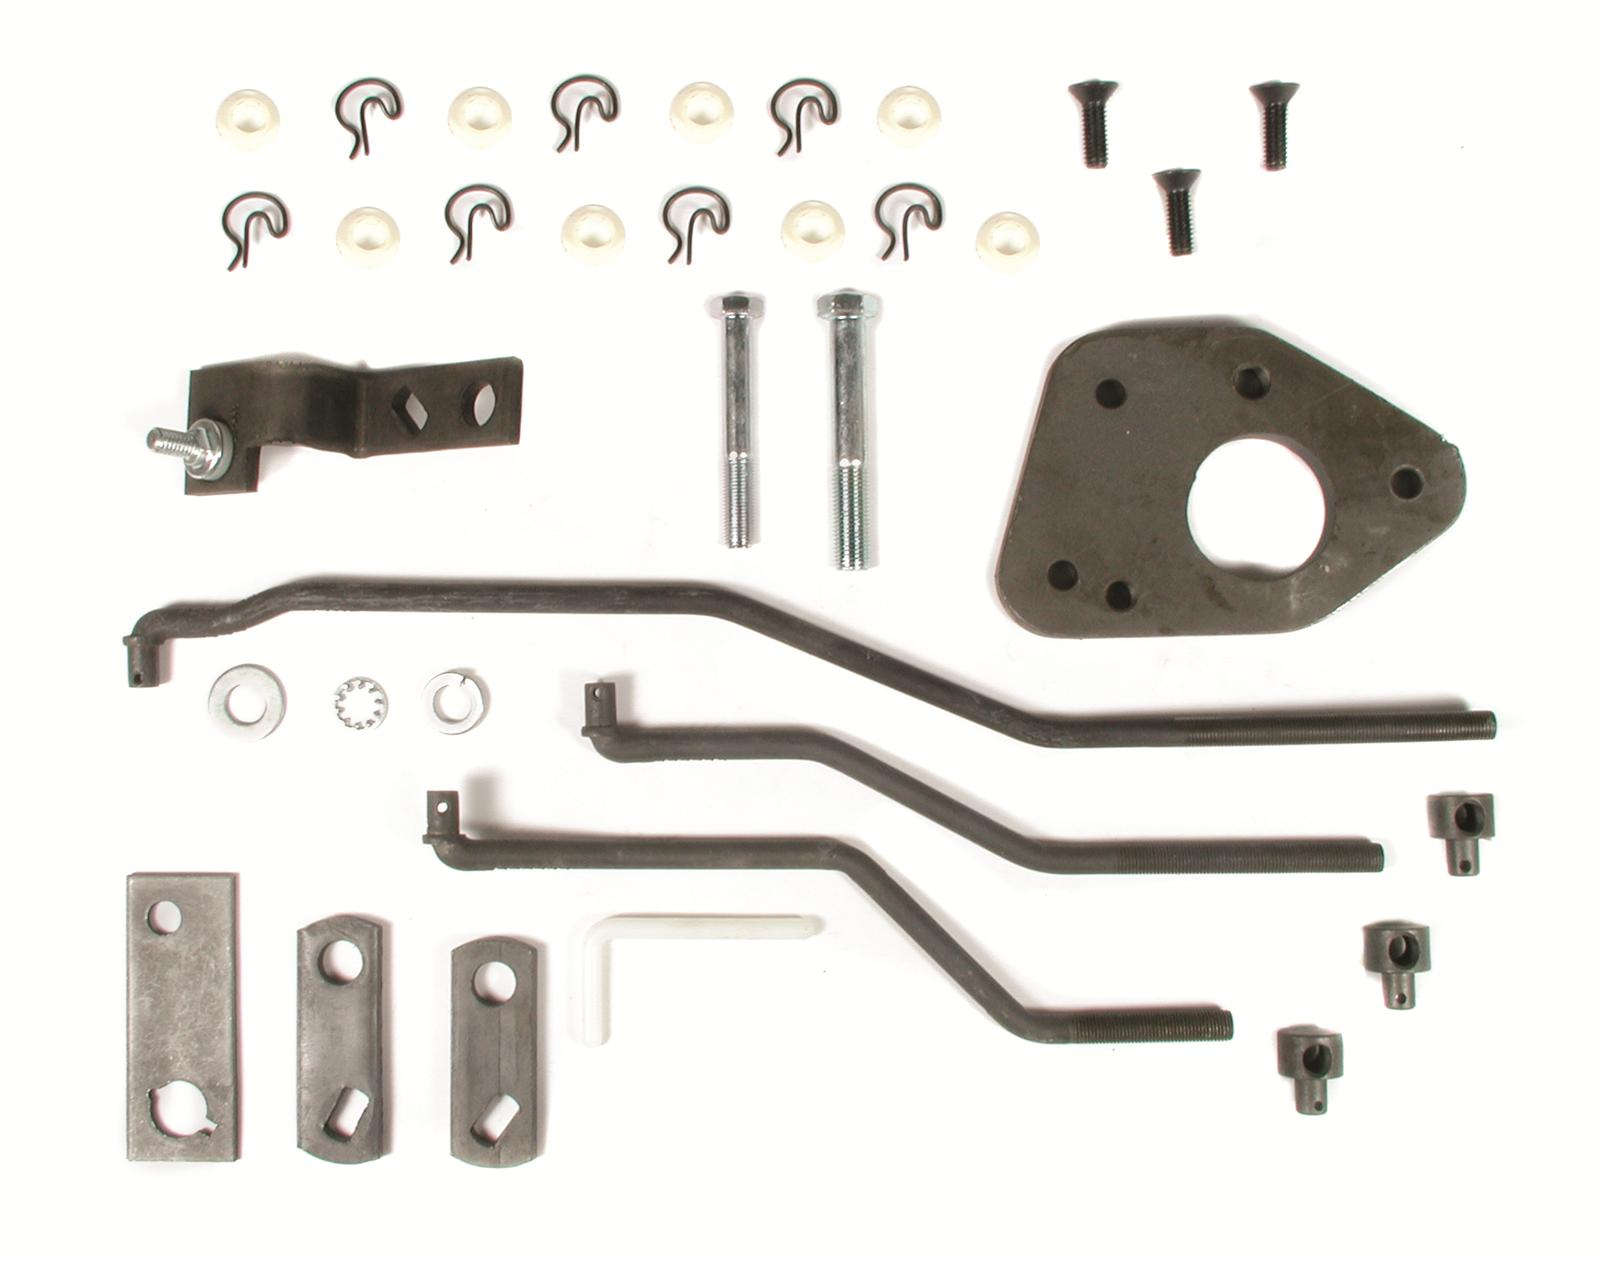 hight resolution of hurst competition plus installation kits 3737638 free shipping on orders over 99 at summit racing